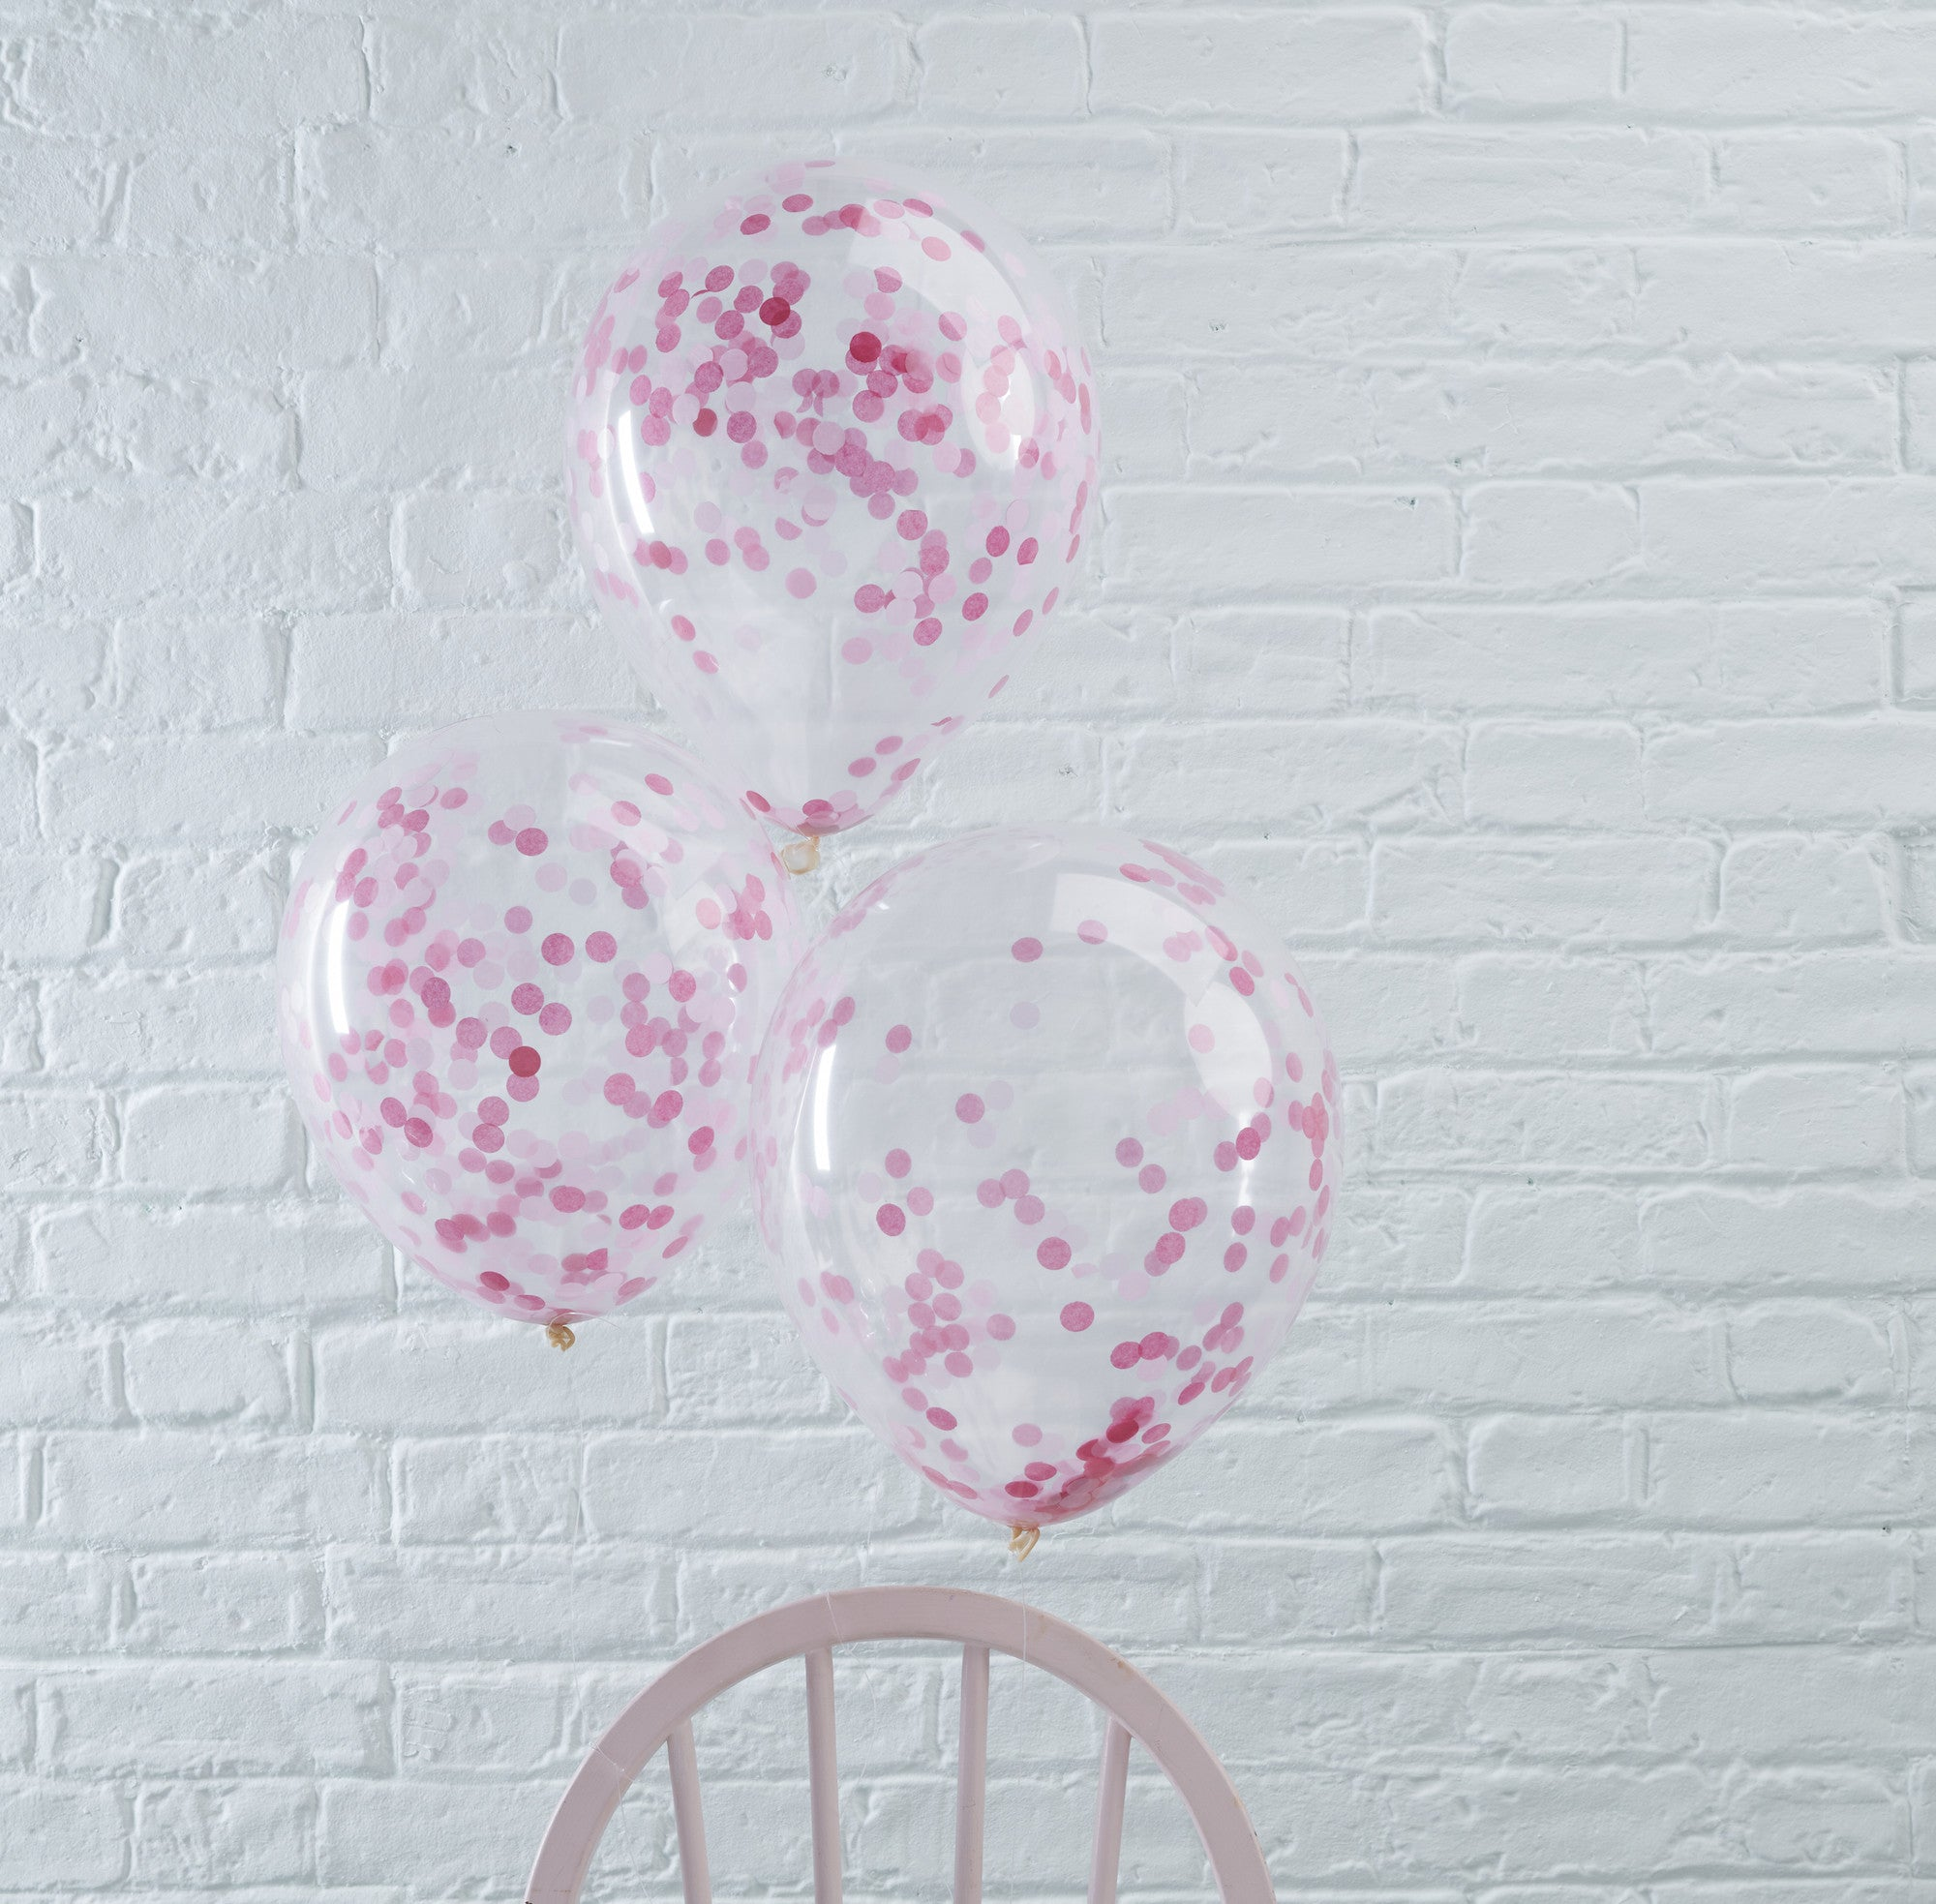 Pink Confetti Filled Balloons 5 Pack - The Sweet Hostess  - 1